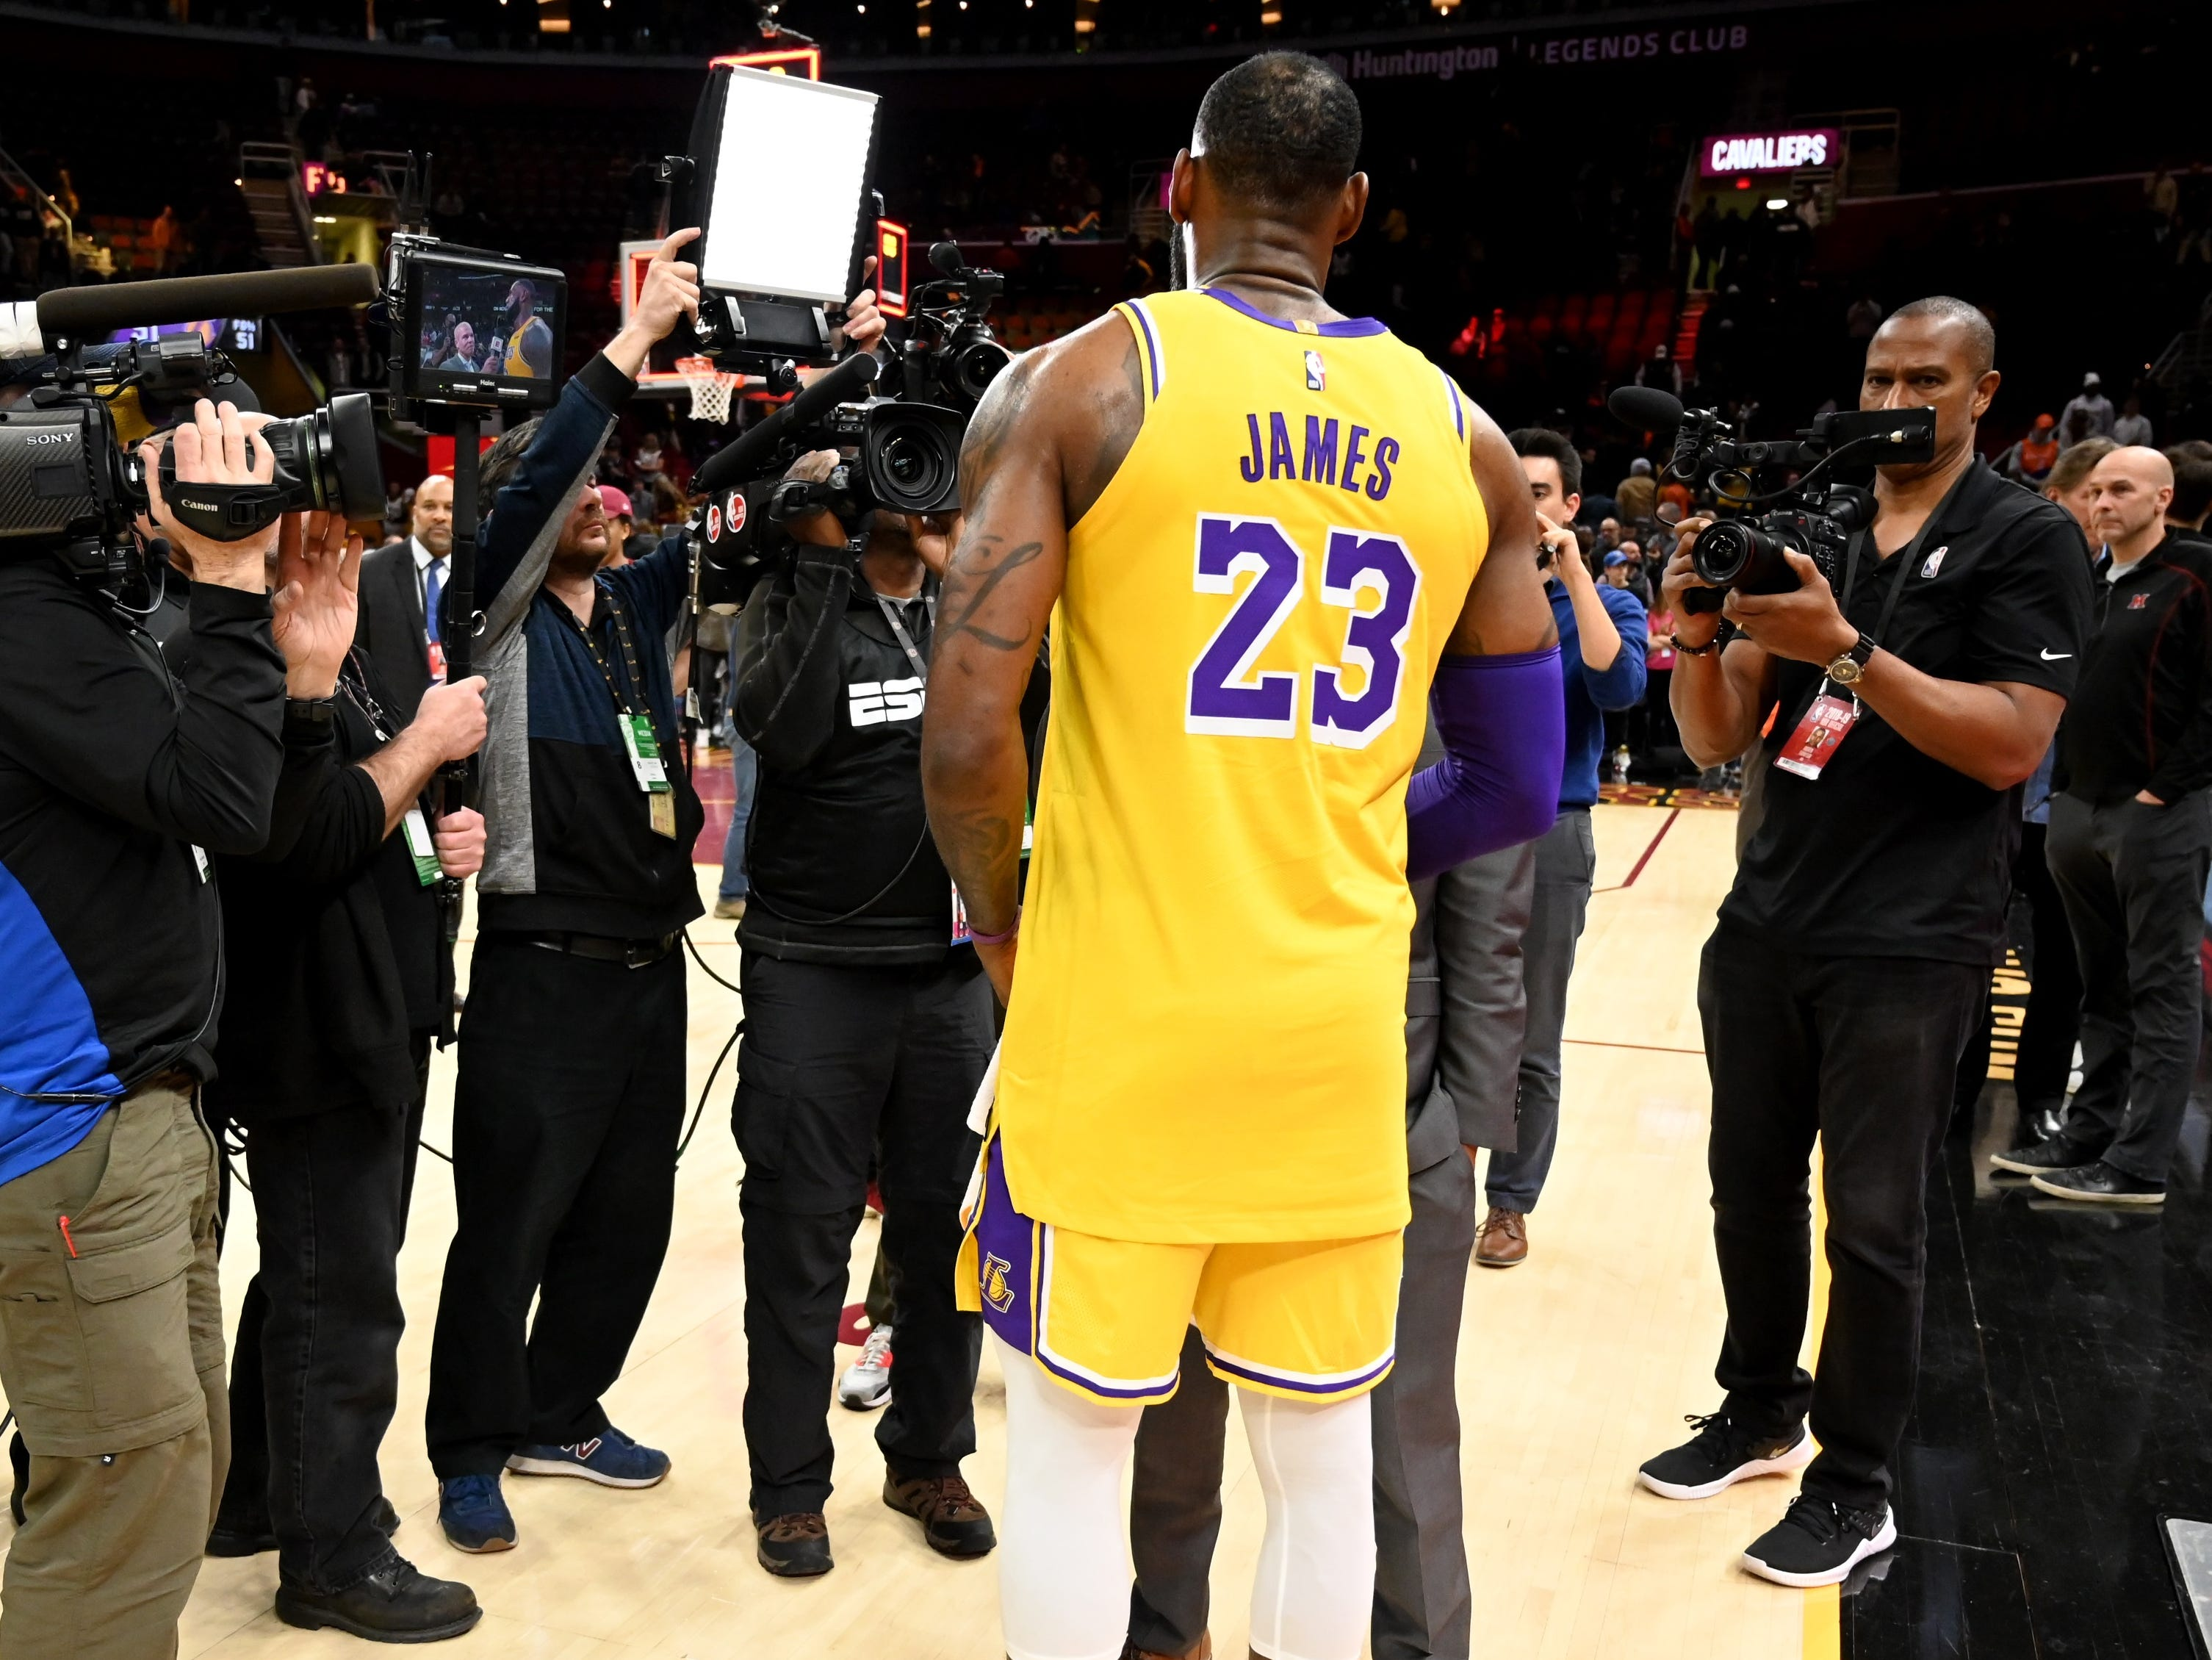 Nov. 21, 2018: LeBron James received a hero's welcome when he returned to Cleveland for the first time as a member of the Lakers.